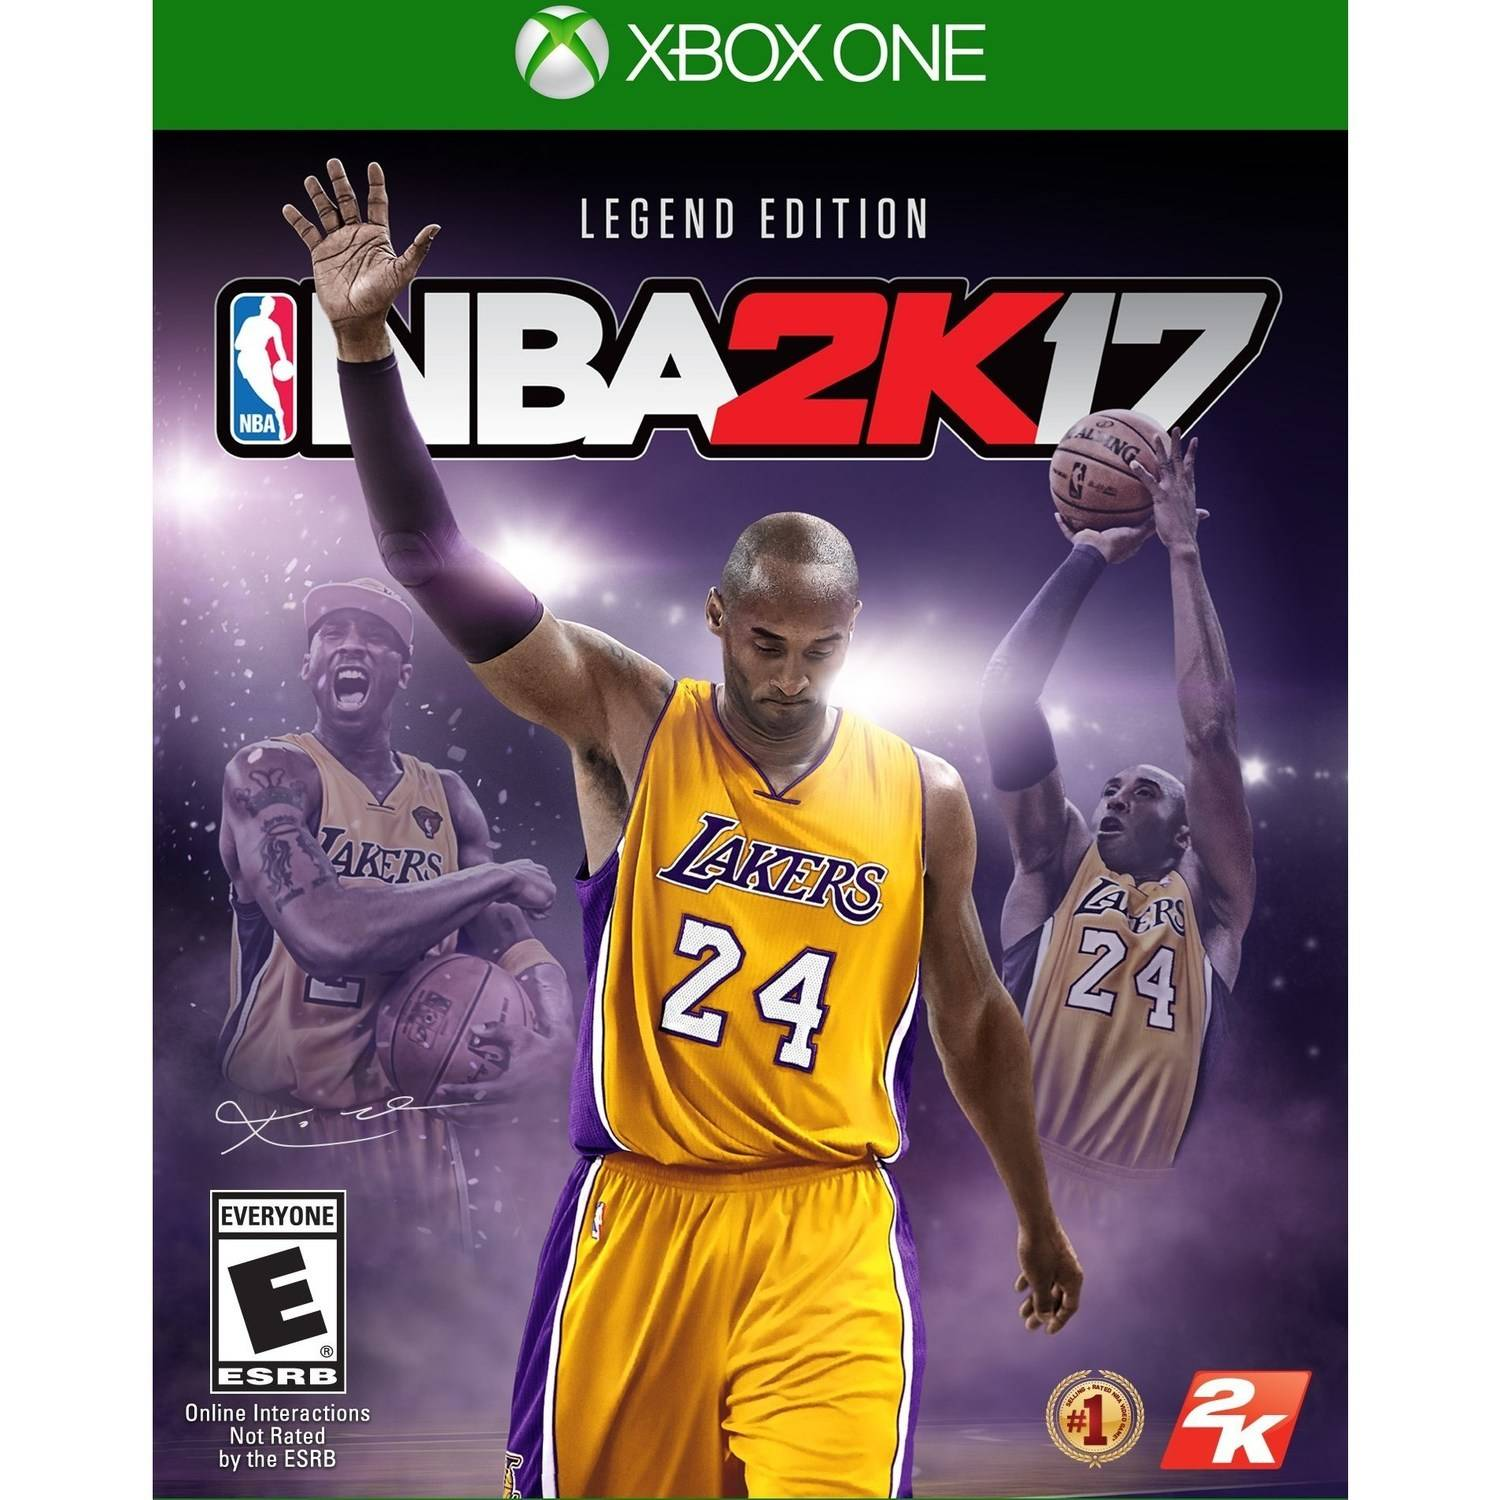 NBA 2K17 - Early Tip Off Edition - PlayStation 4 [Disc, Early Tip Off,  PlayStation 4] - Walmart.com